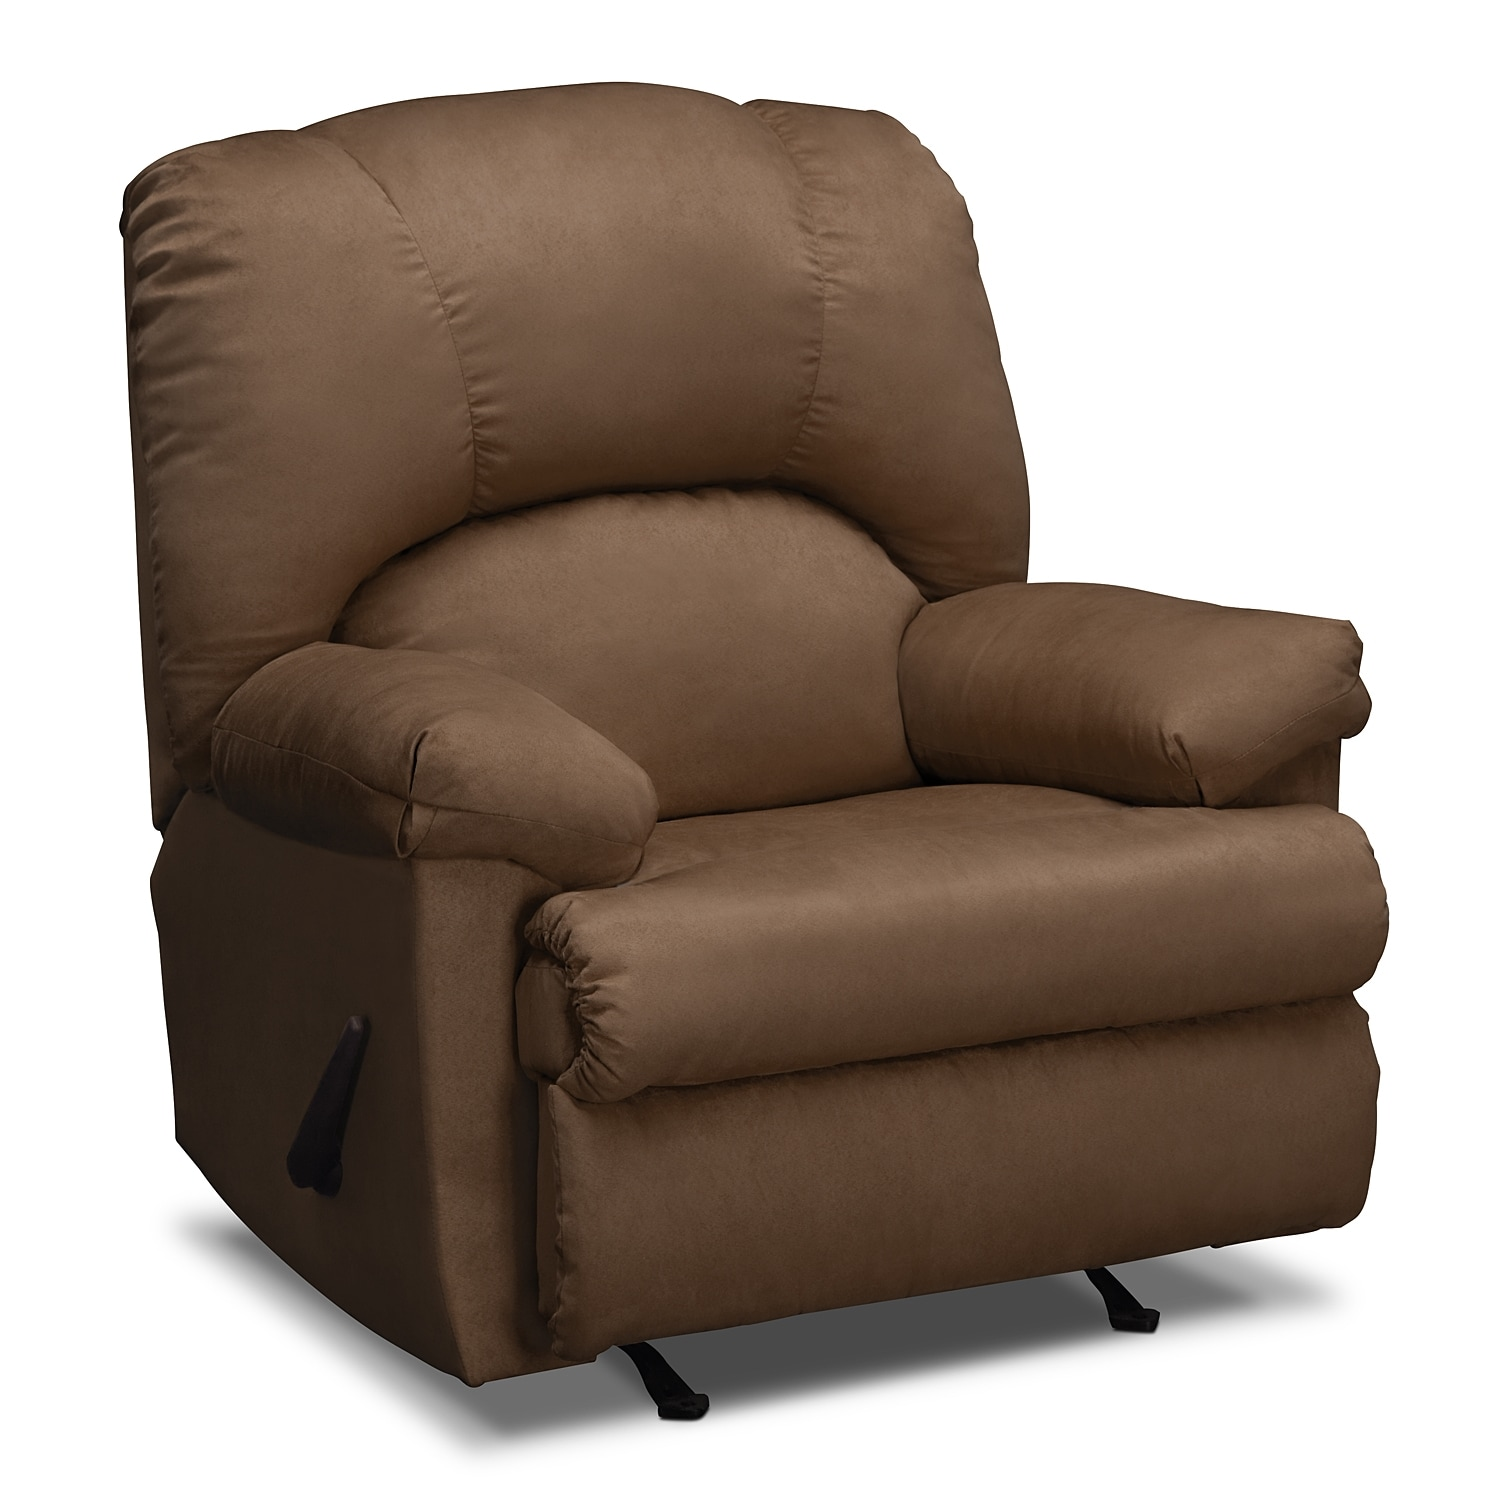 American Signature Furniture Com: Quincy Rocker Recliner - Latte